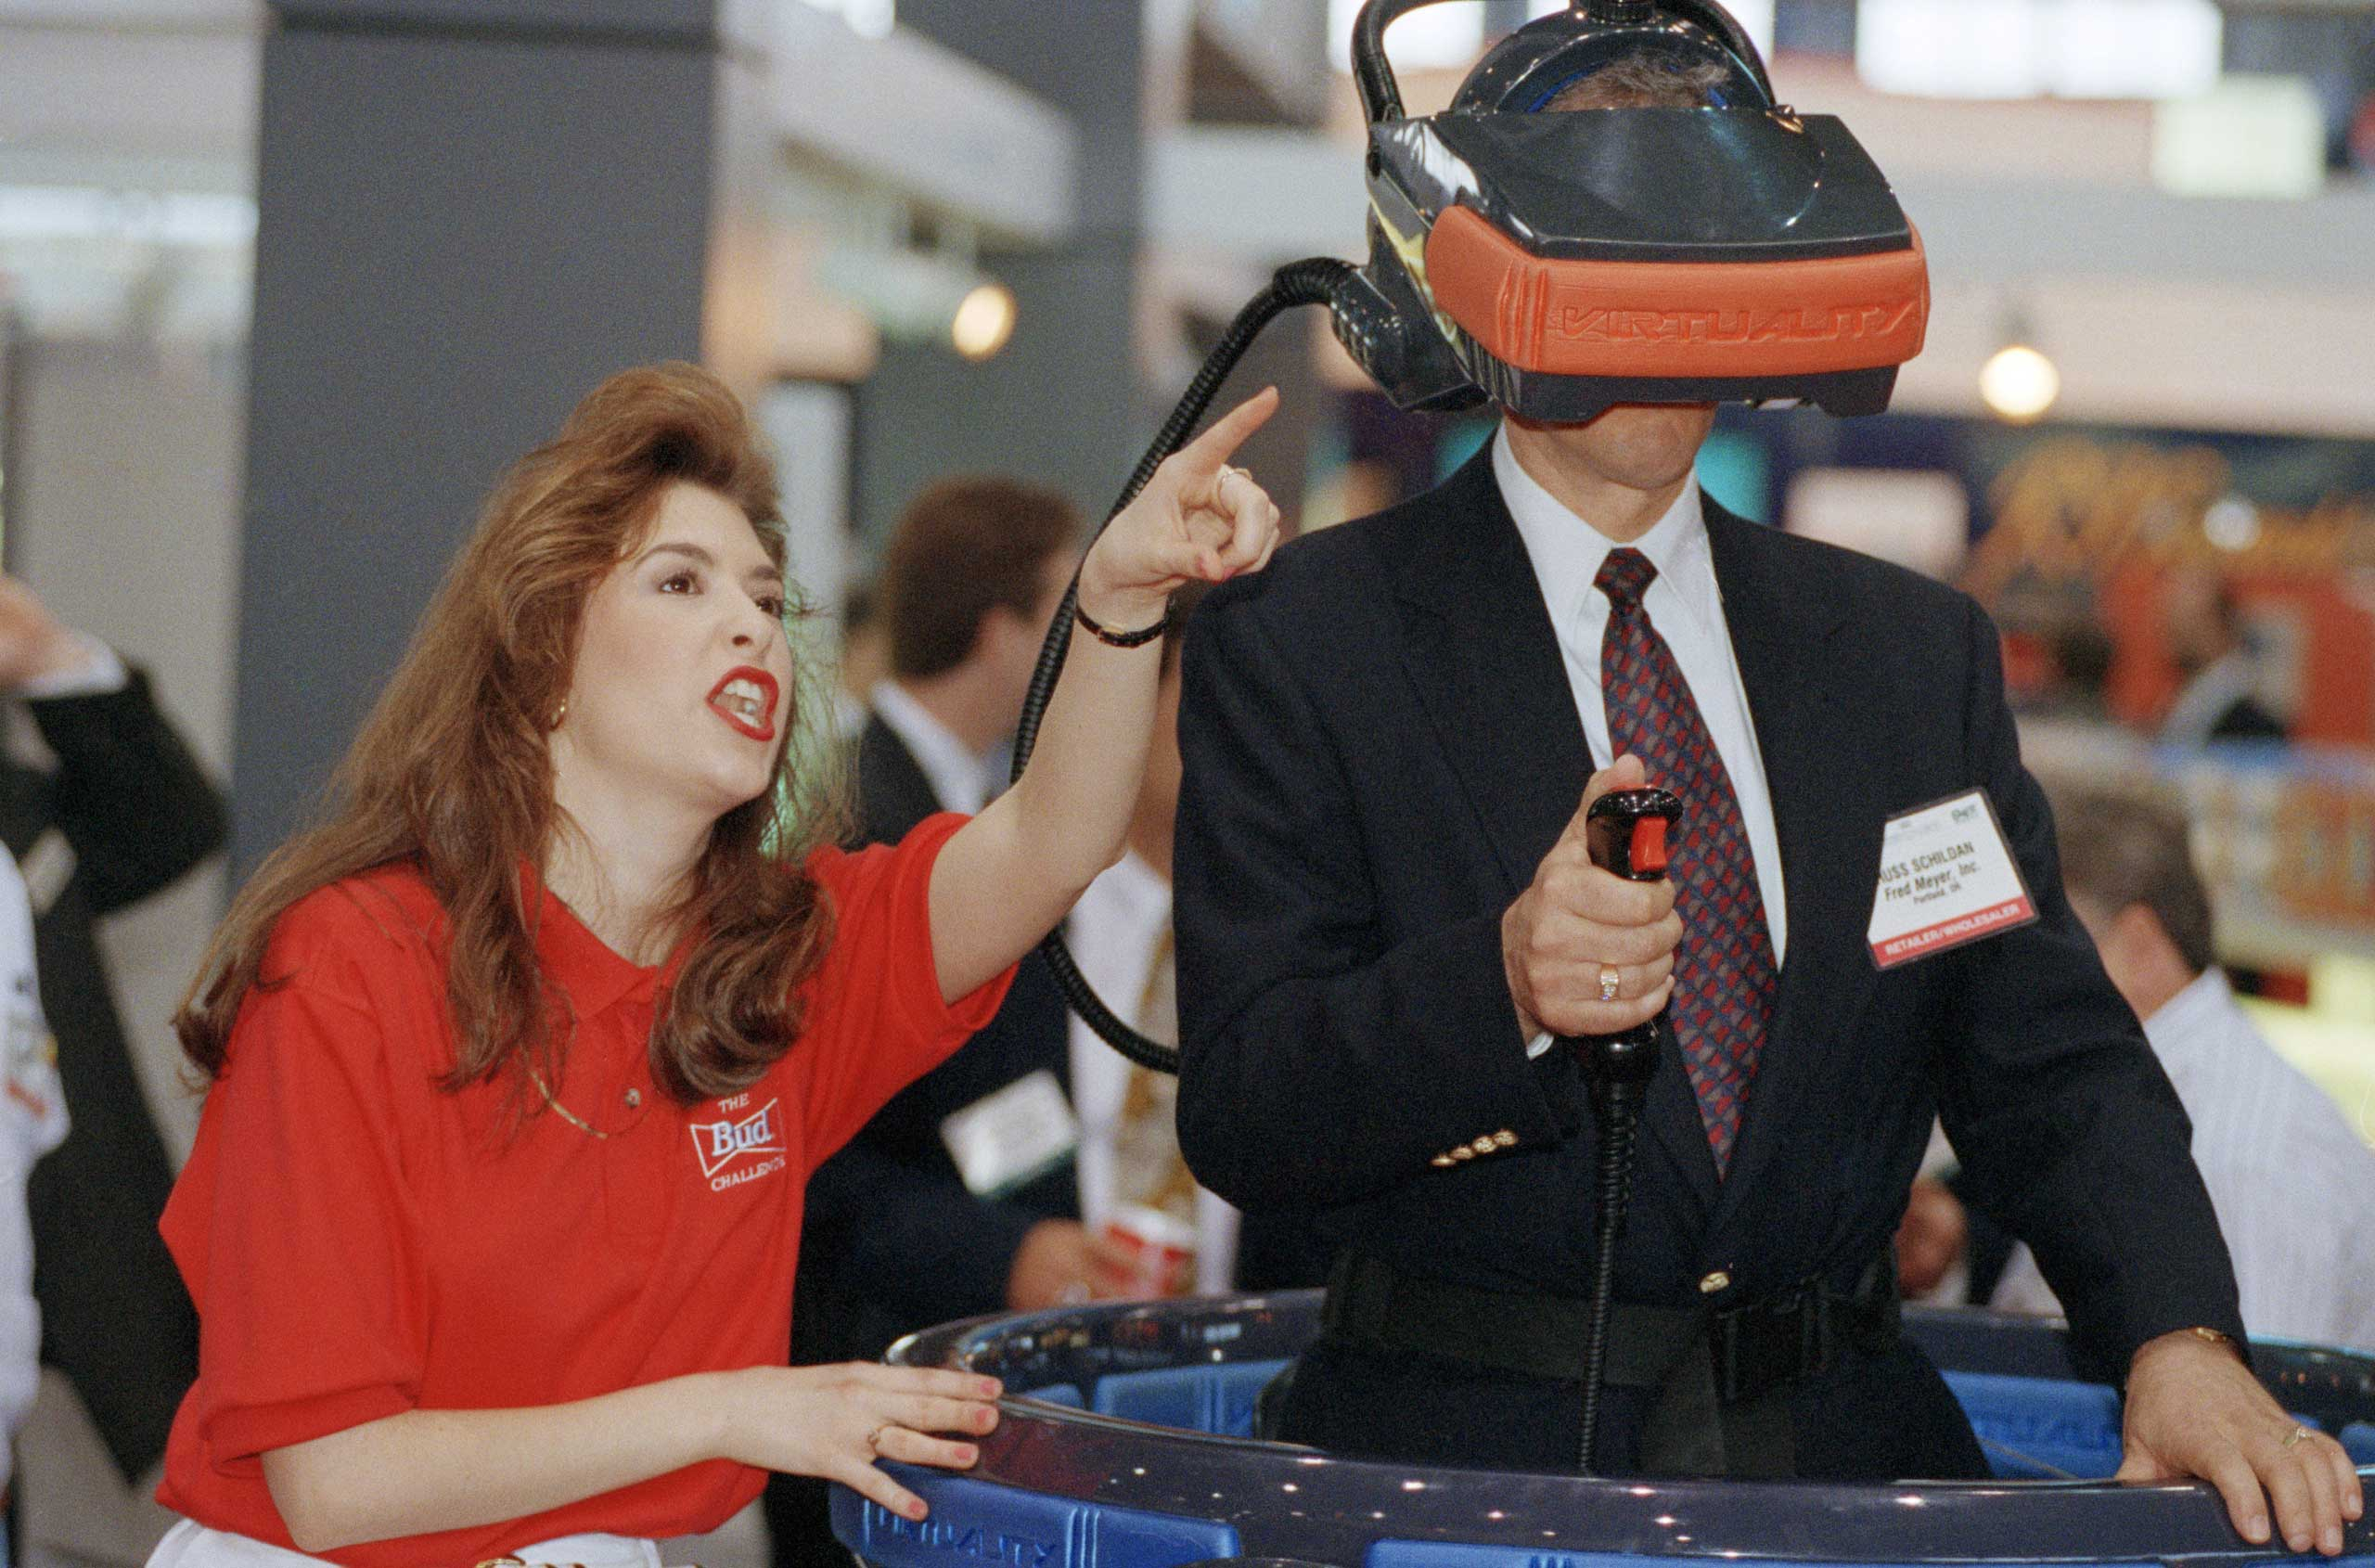 1993                                                              The 3-player Budweiser virtual reality mask at the Food Marketing Institute's International Supermarket Industry Convention and Educational Expostion in Chicago.